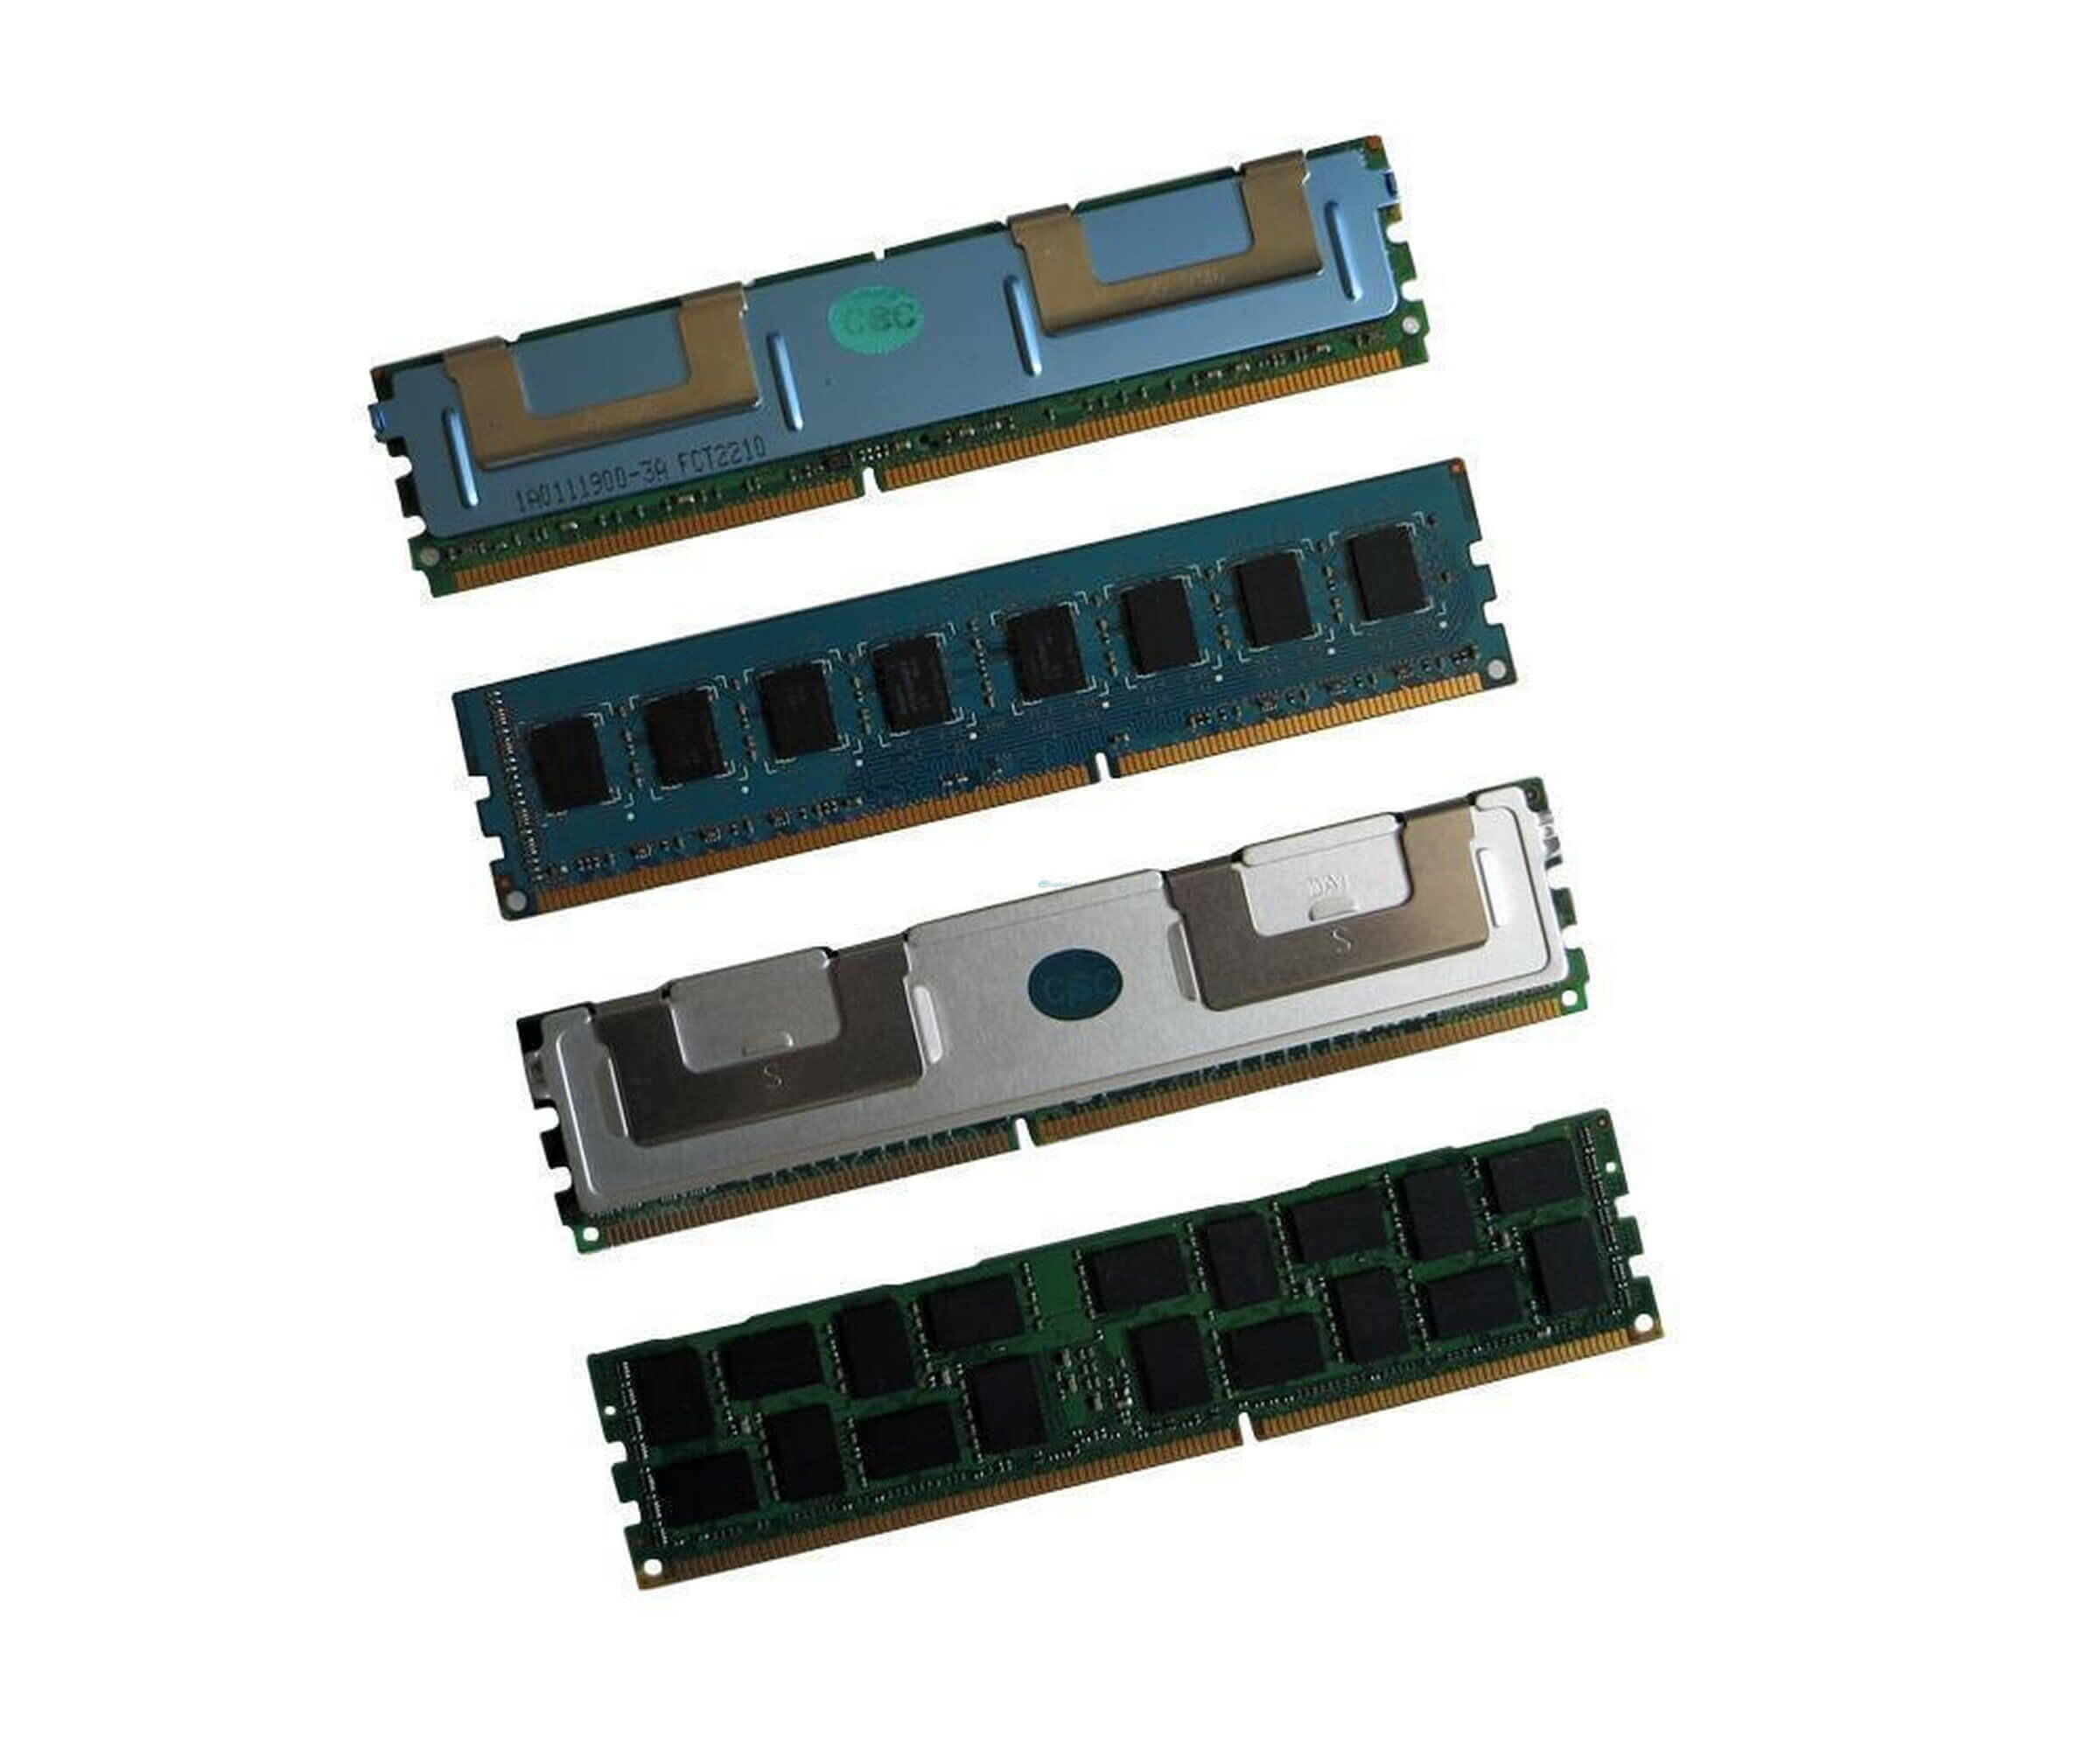 Kingston KY996D-ELD Memory - 2 GB - DIMM 240-PIN - PC-8500 - DDR3 SDRAM